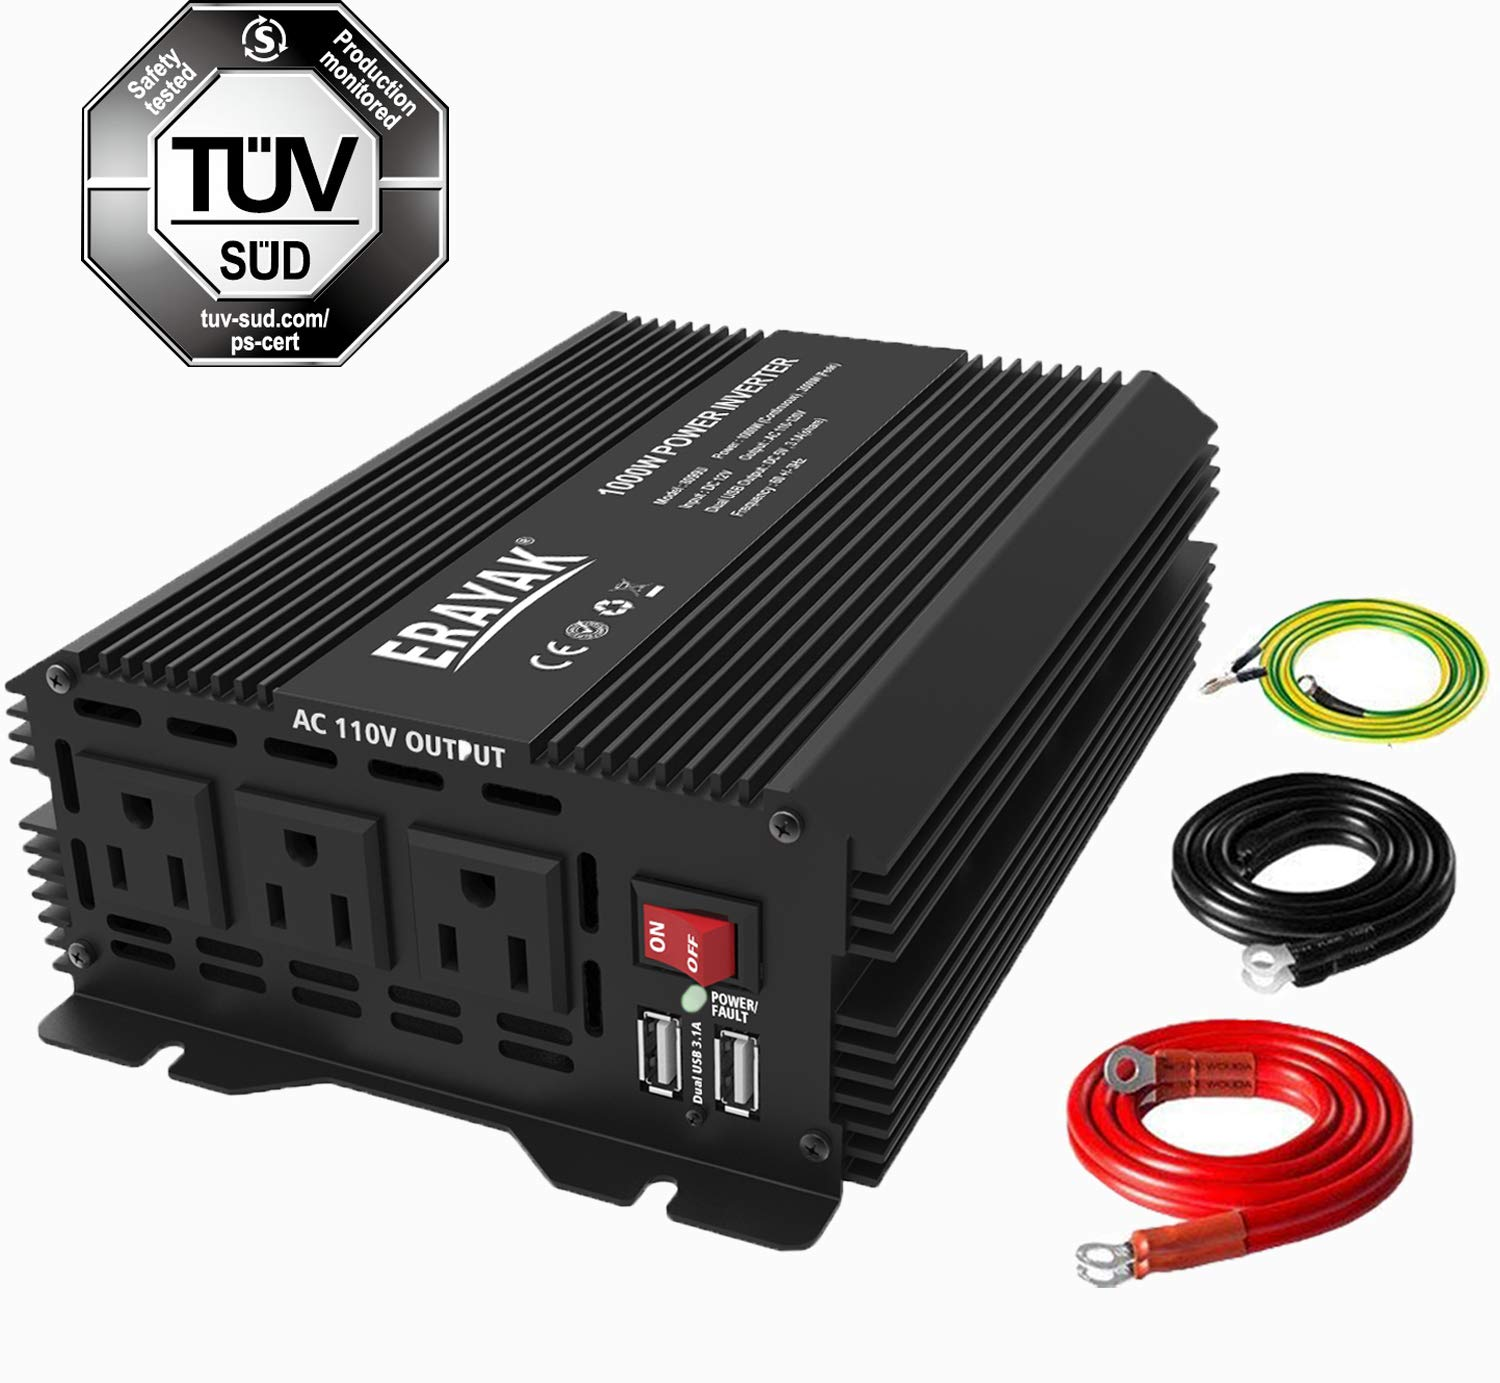 Power Inverter 1000W DC to AC Converter 2000 Watt Peak Inverter for Car with 6.2A Dual USB Ports,TUV Certified by ERAYAK